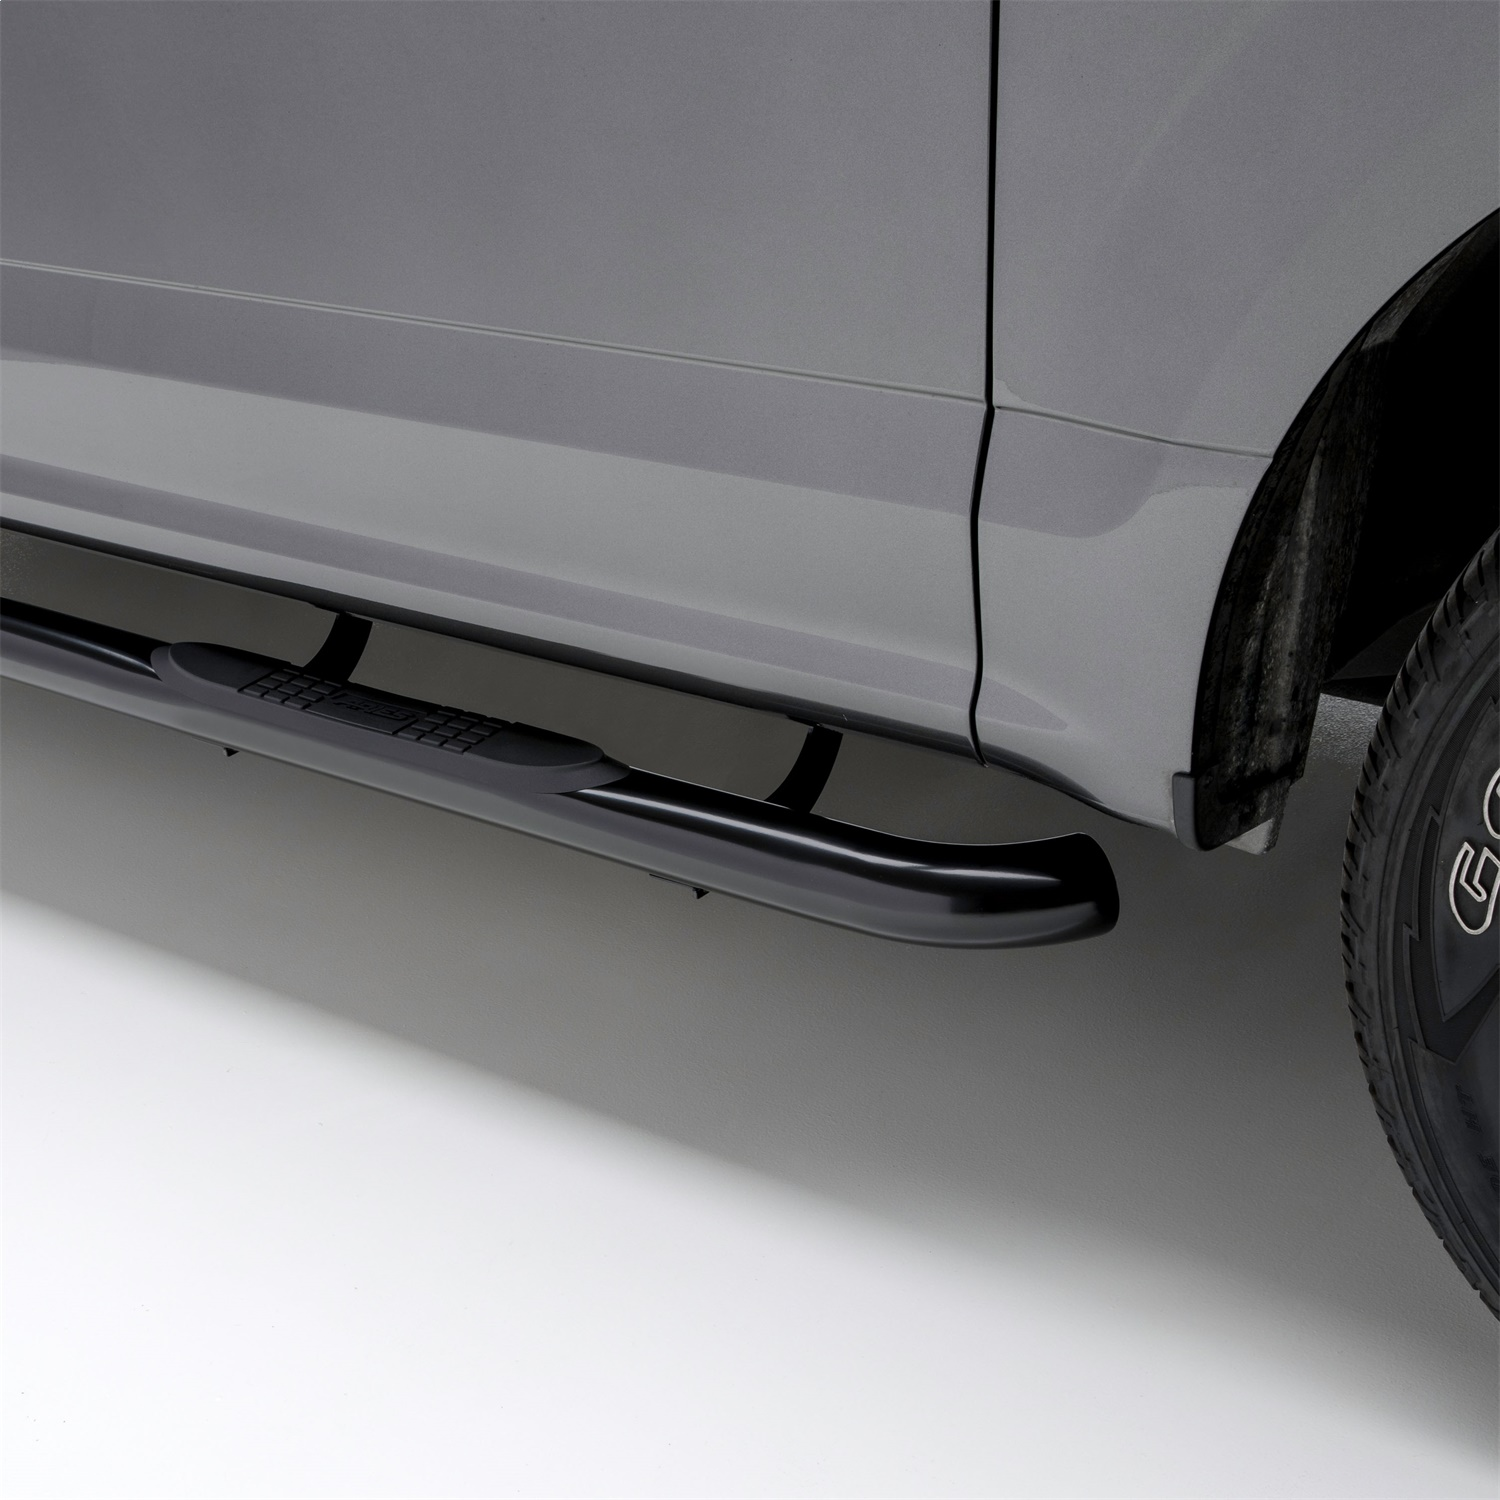 Aries 3 in. Round Side Bars, Incl. Side Bars And Mounting Hardware, Heavy-Wall Tube, Carbon Steel, Semi-Gloss Black